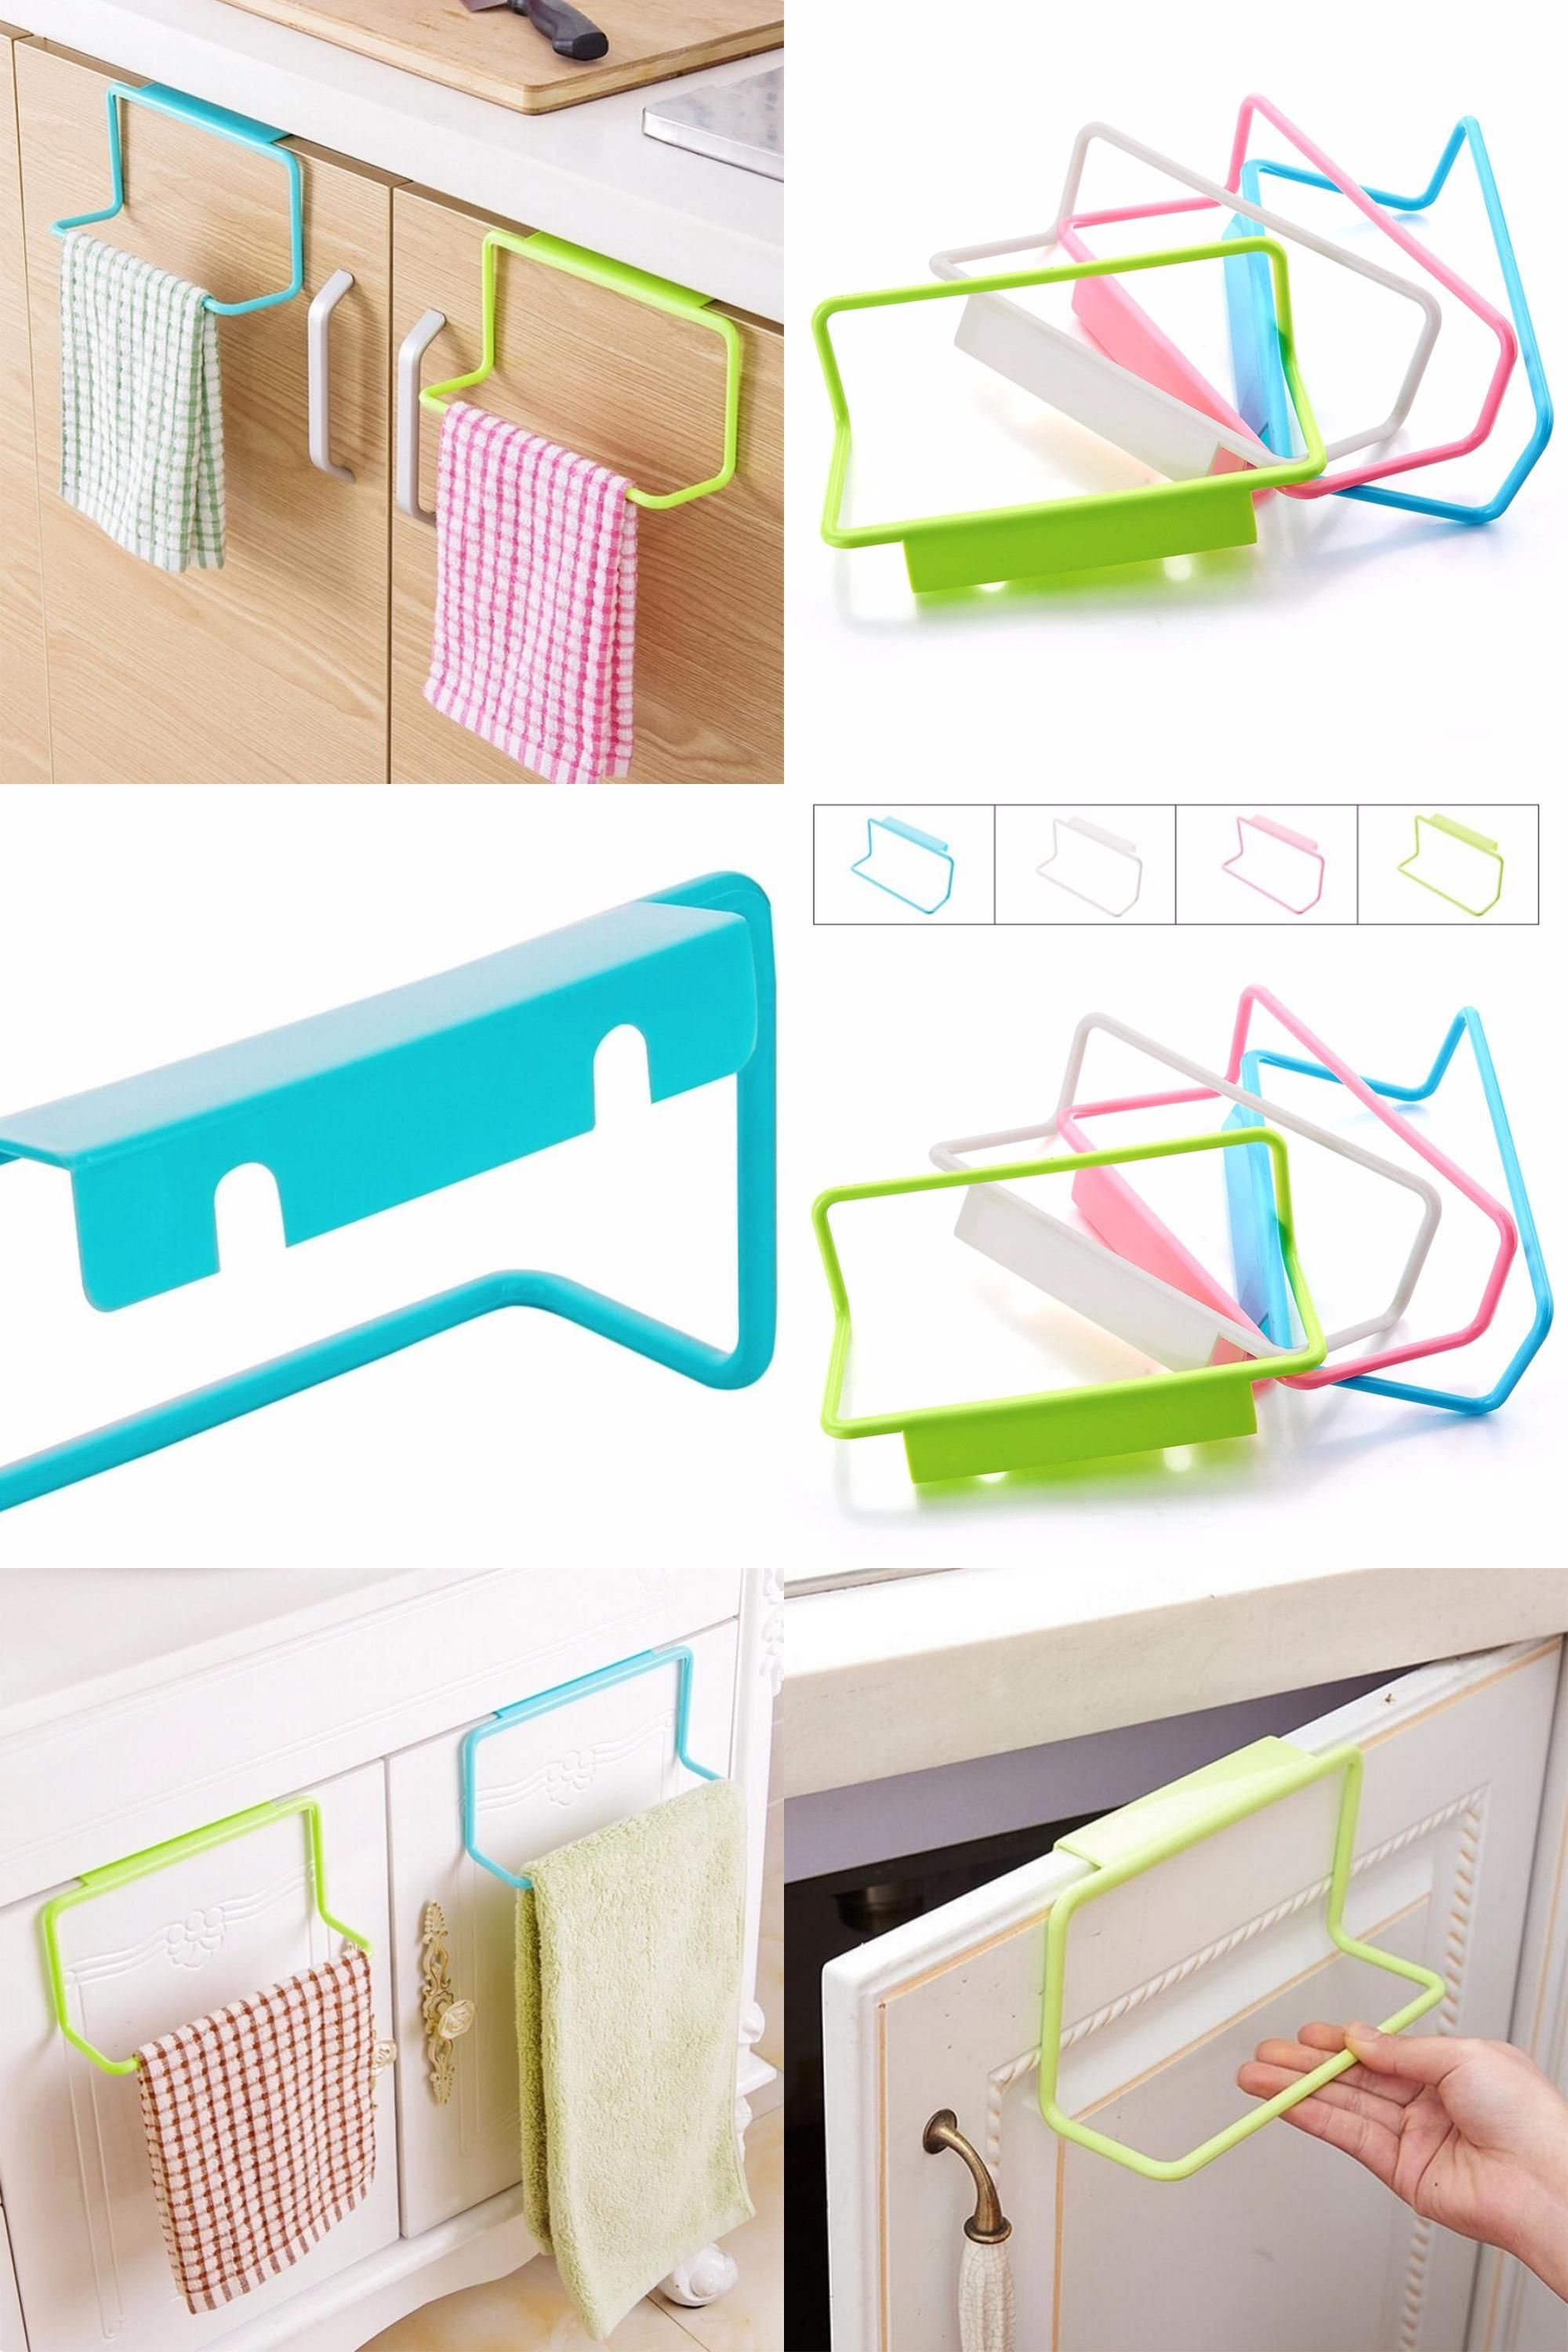 Visit to Buy] 1Pc New Portable Kitchen Cabinet Over Door Hanging ...